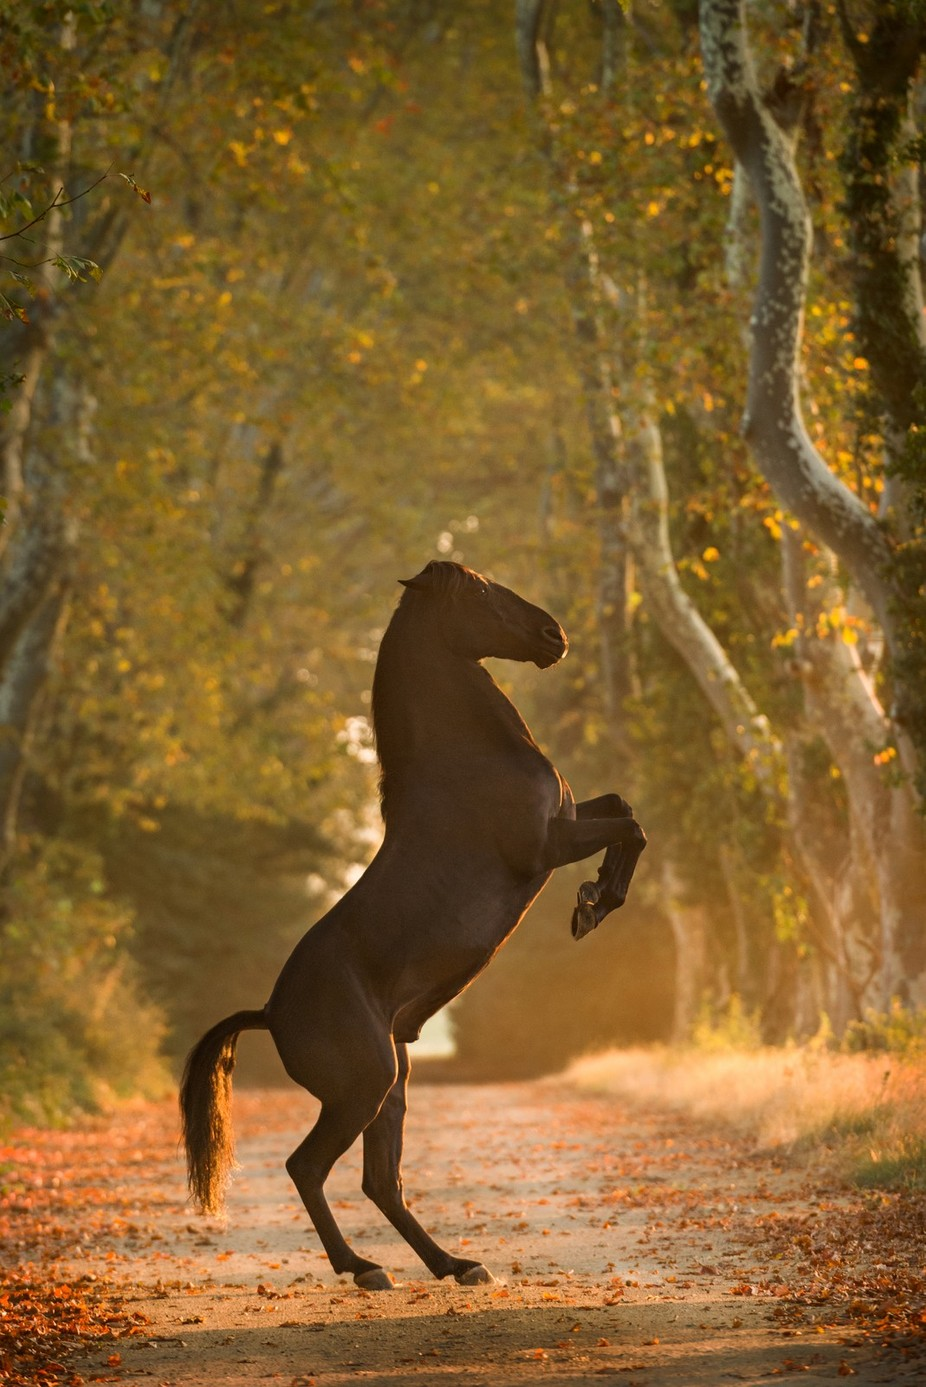 The prancing horse by Masher - Social Exposure Photo Contest Vol 12